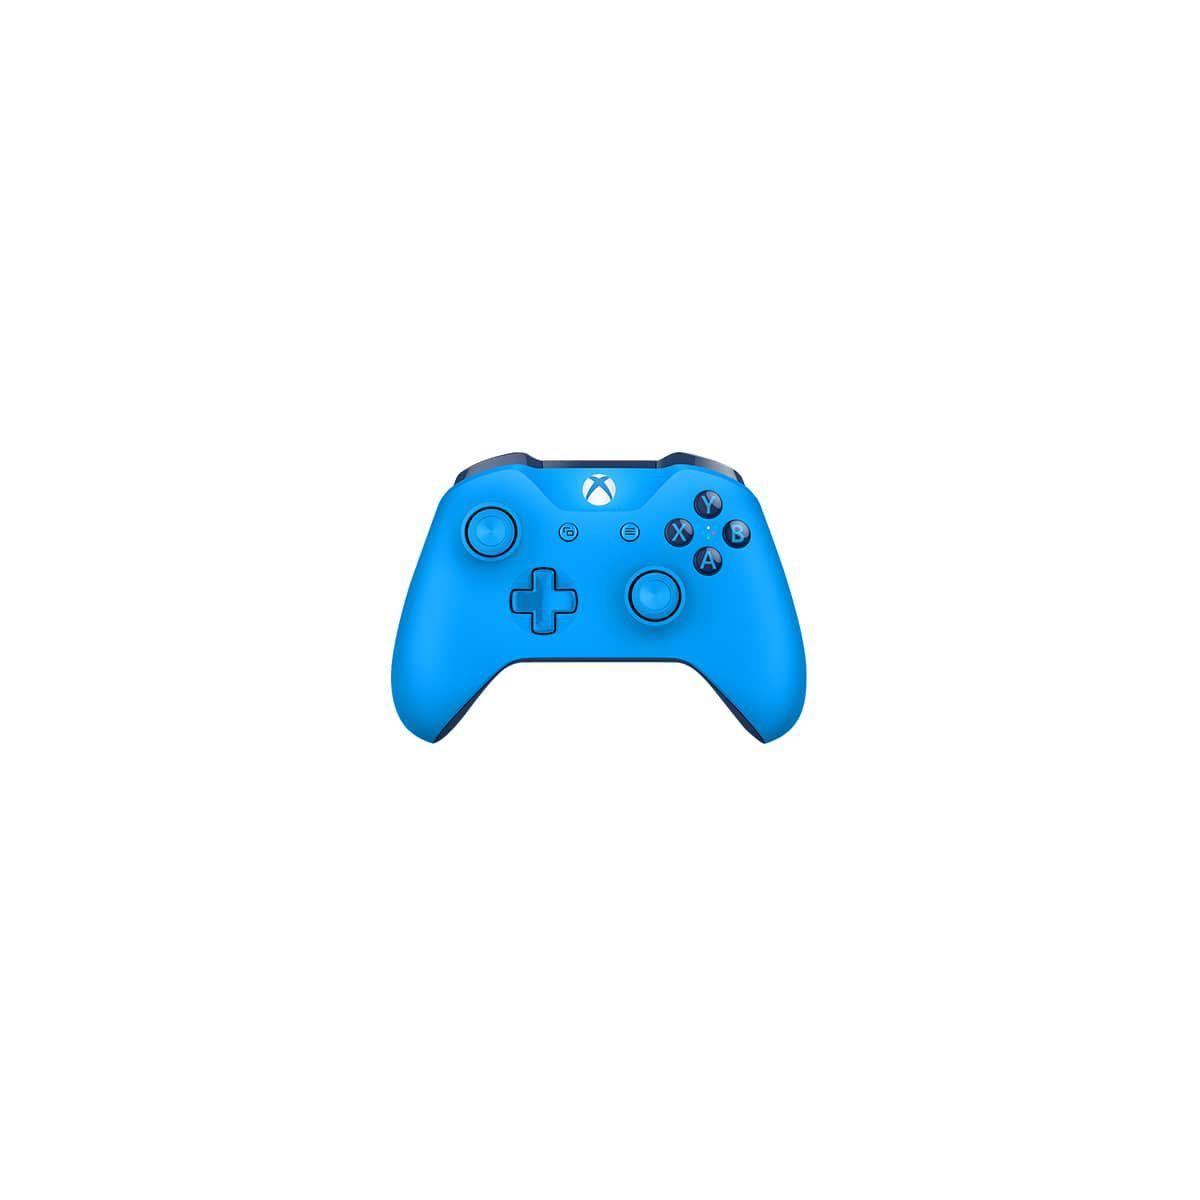 Acc. microsoft manette sans fil xbox one - 5% de remise : code multi5 (photo)